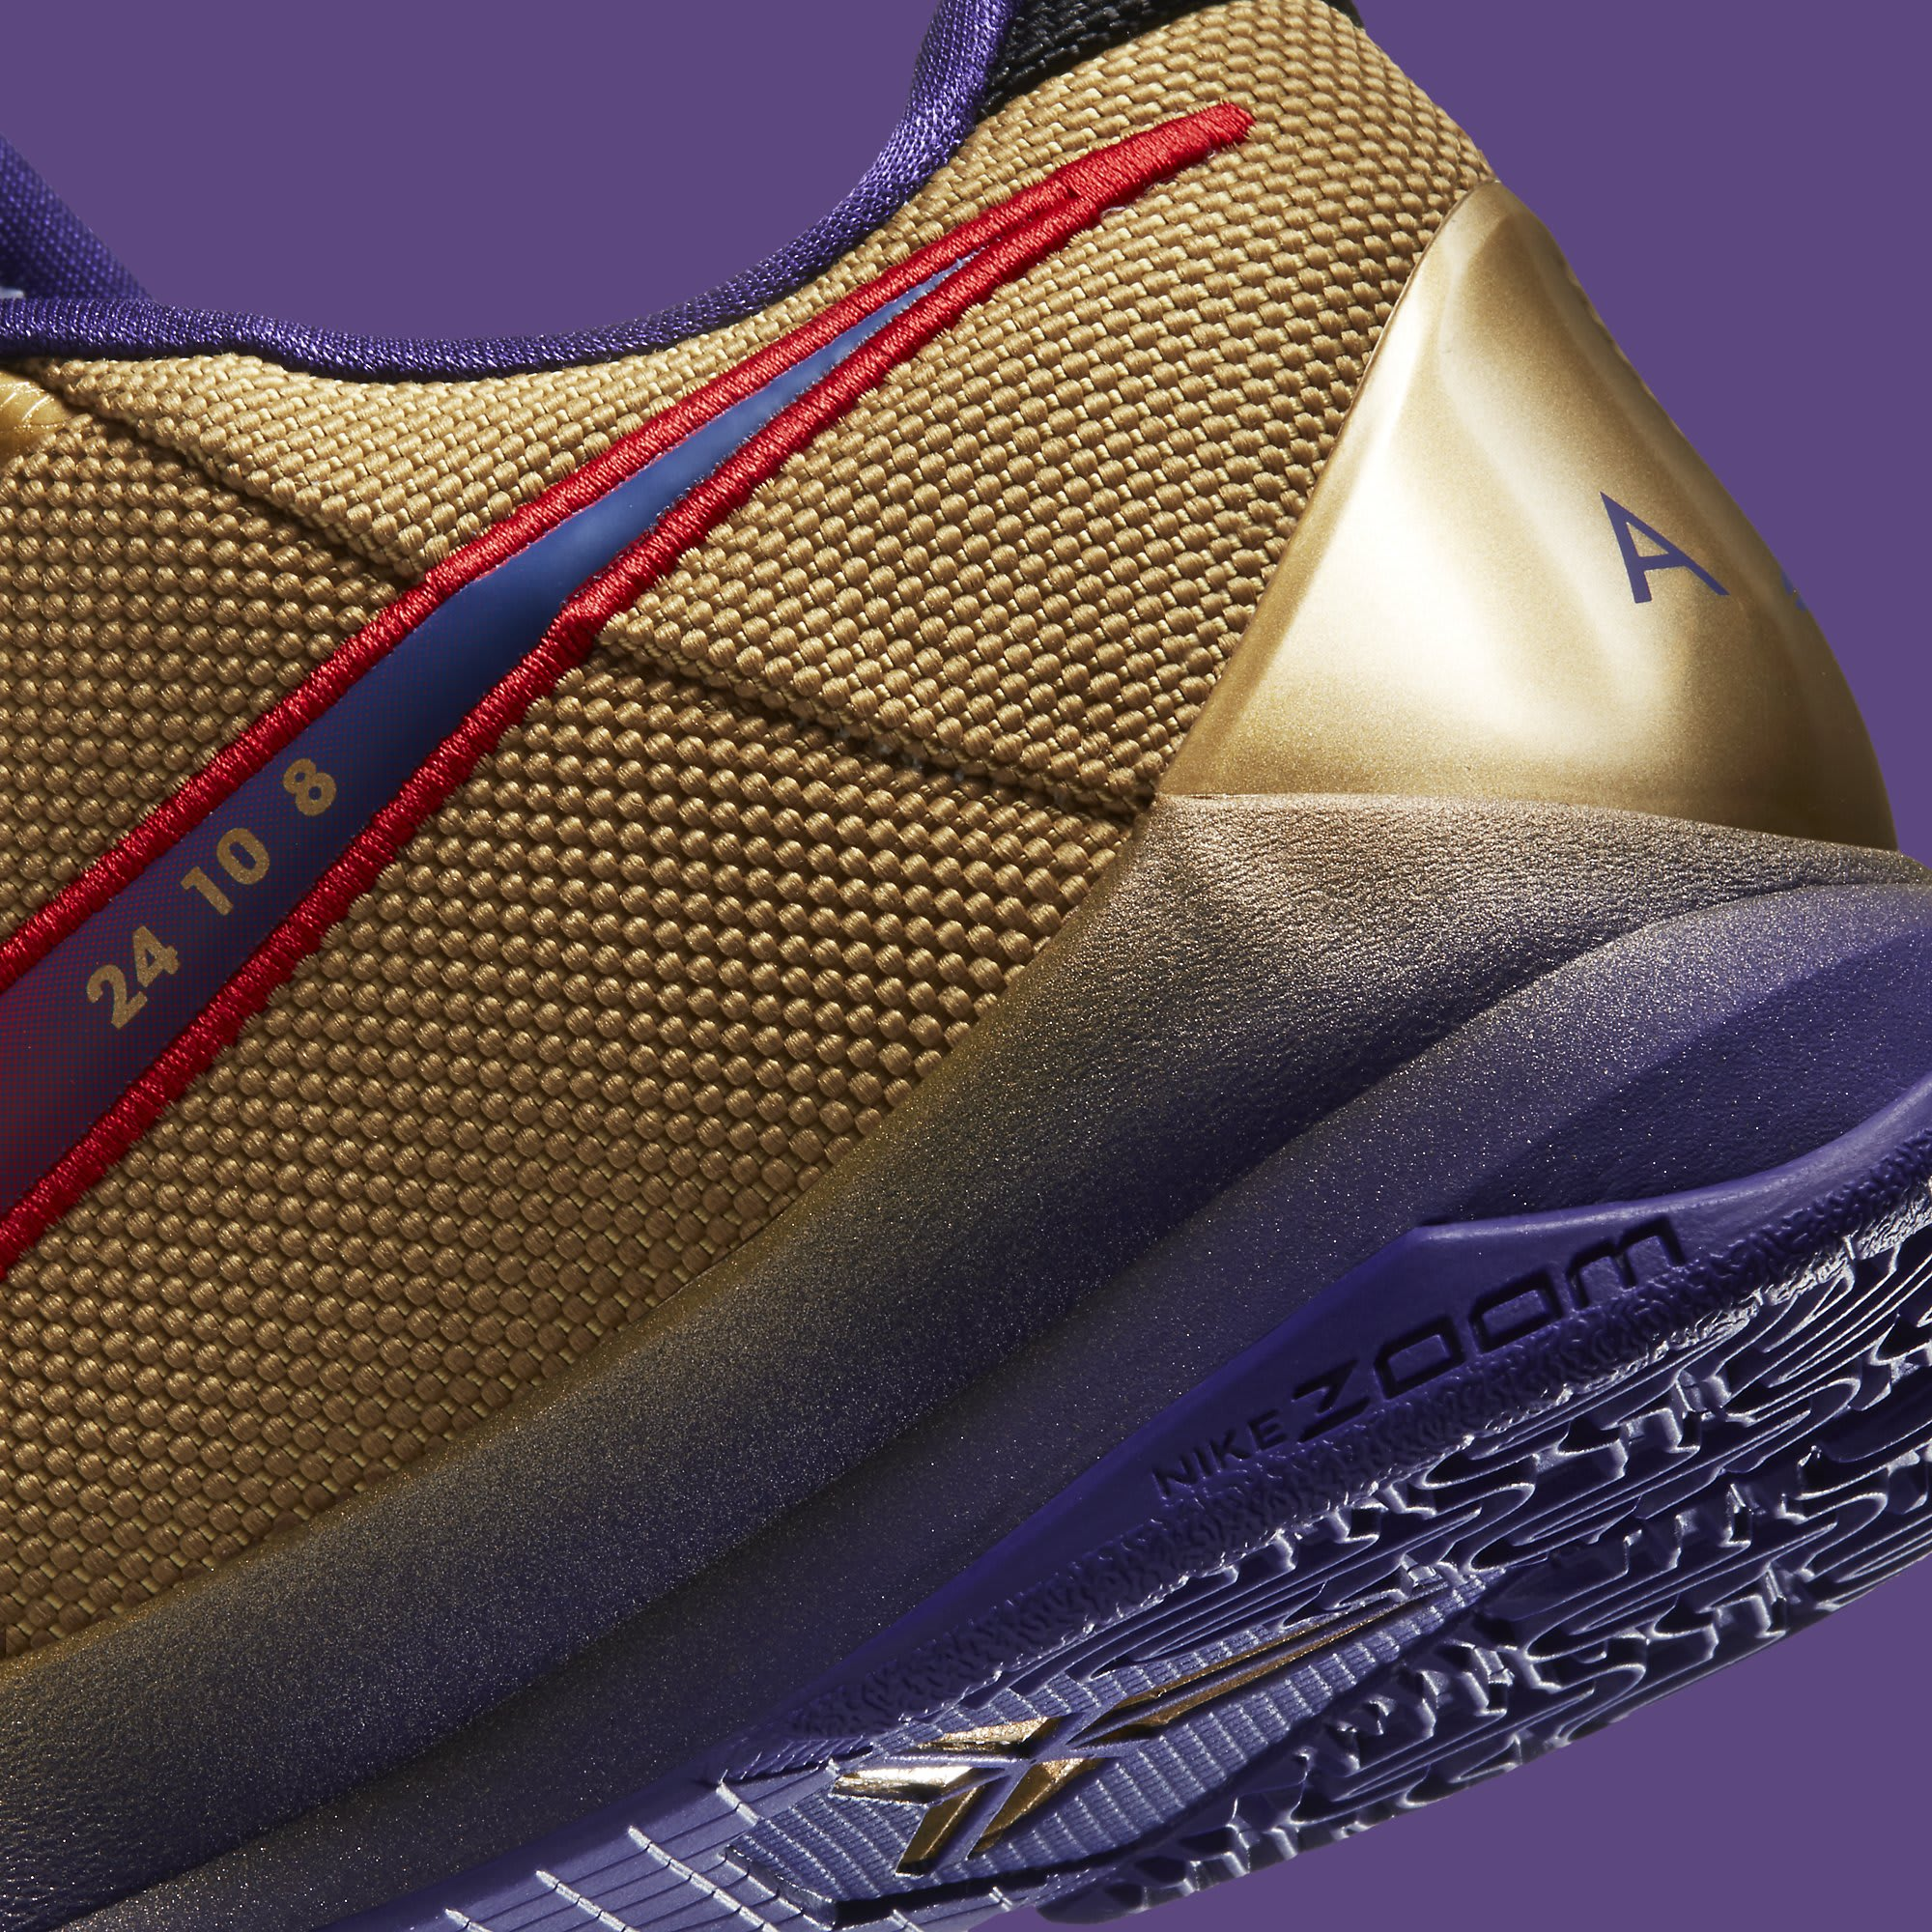 Undefeated x Nike Kobe 5 Gold Hall of Fame Release date DA6809-700 Heel Detail